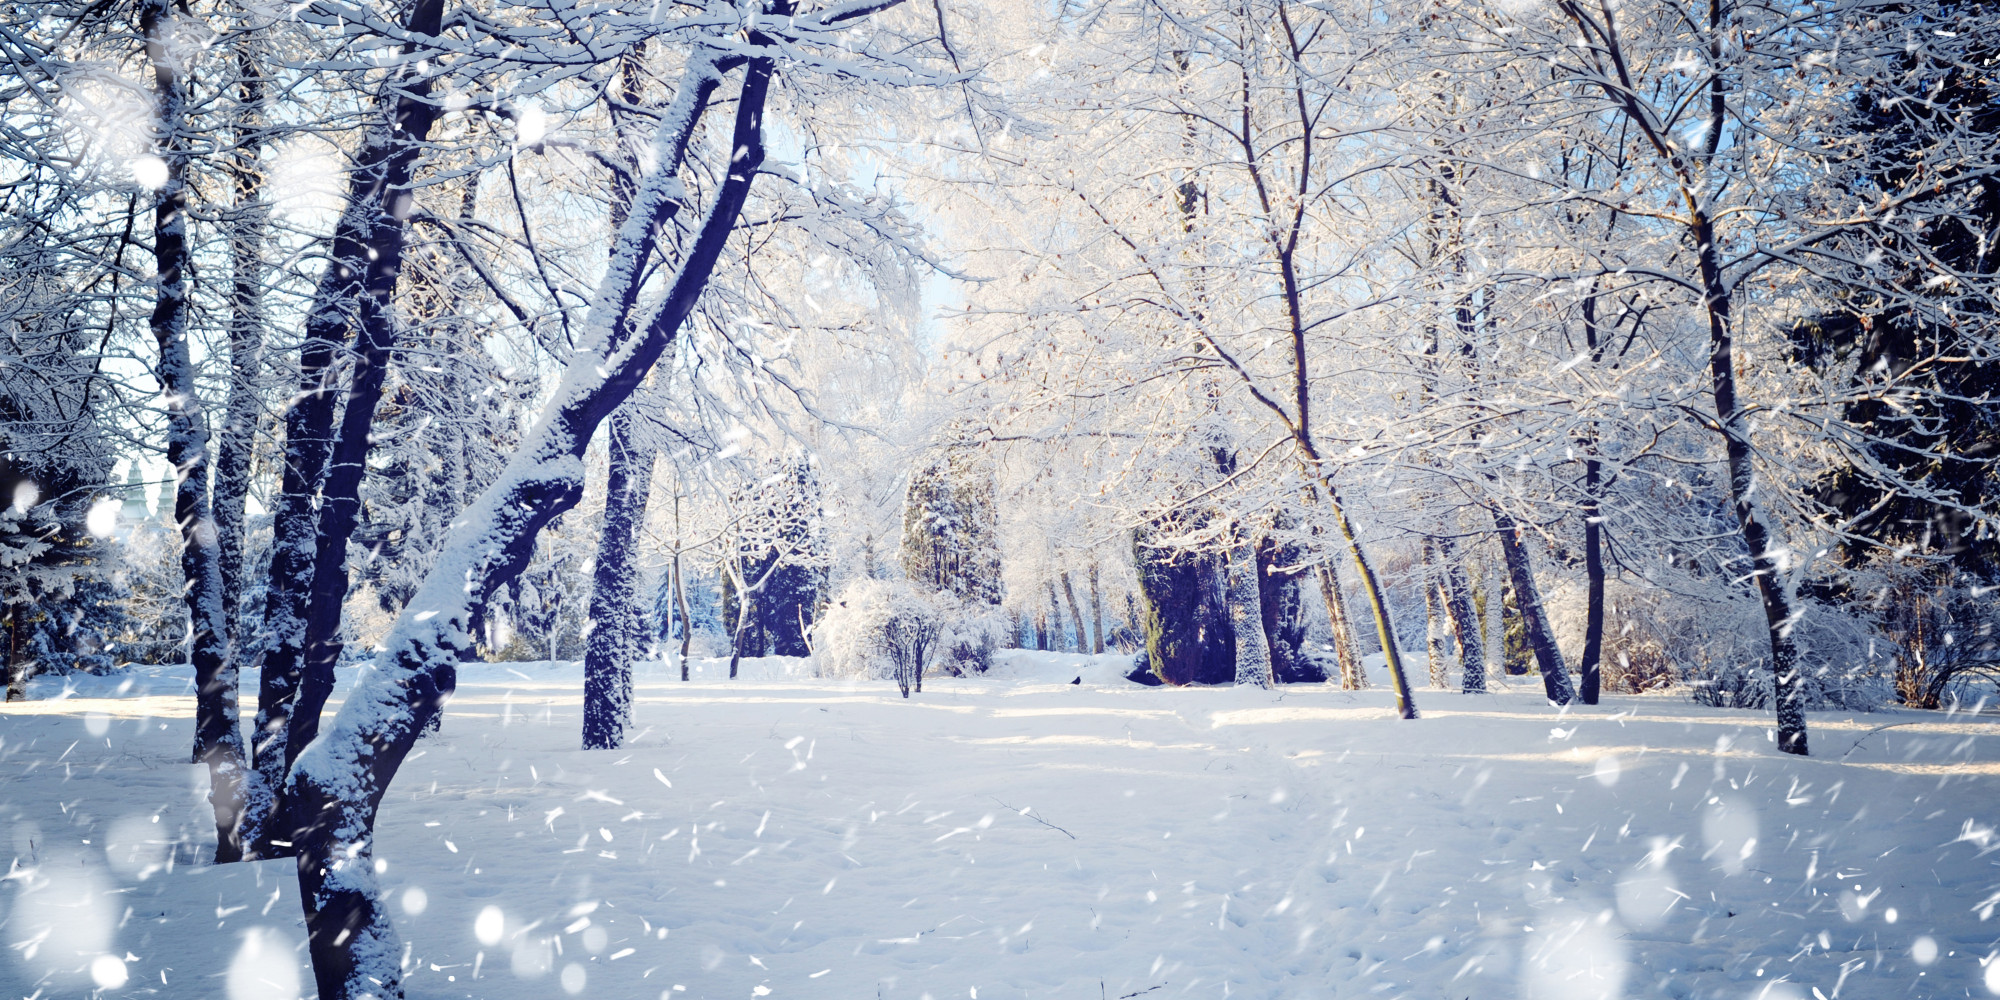 Facebook Cover Photos Scenery Winter | galleryhip.com - The ...